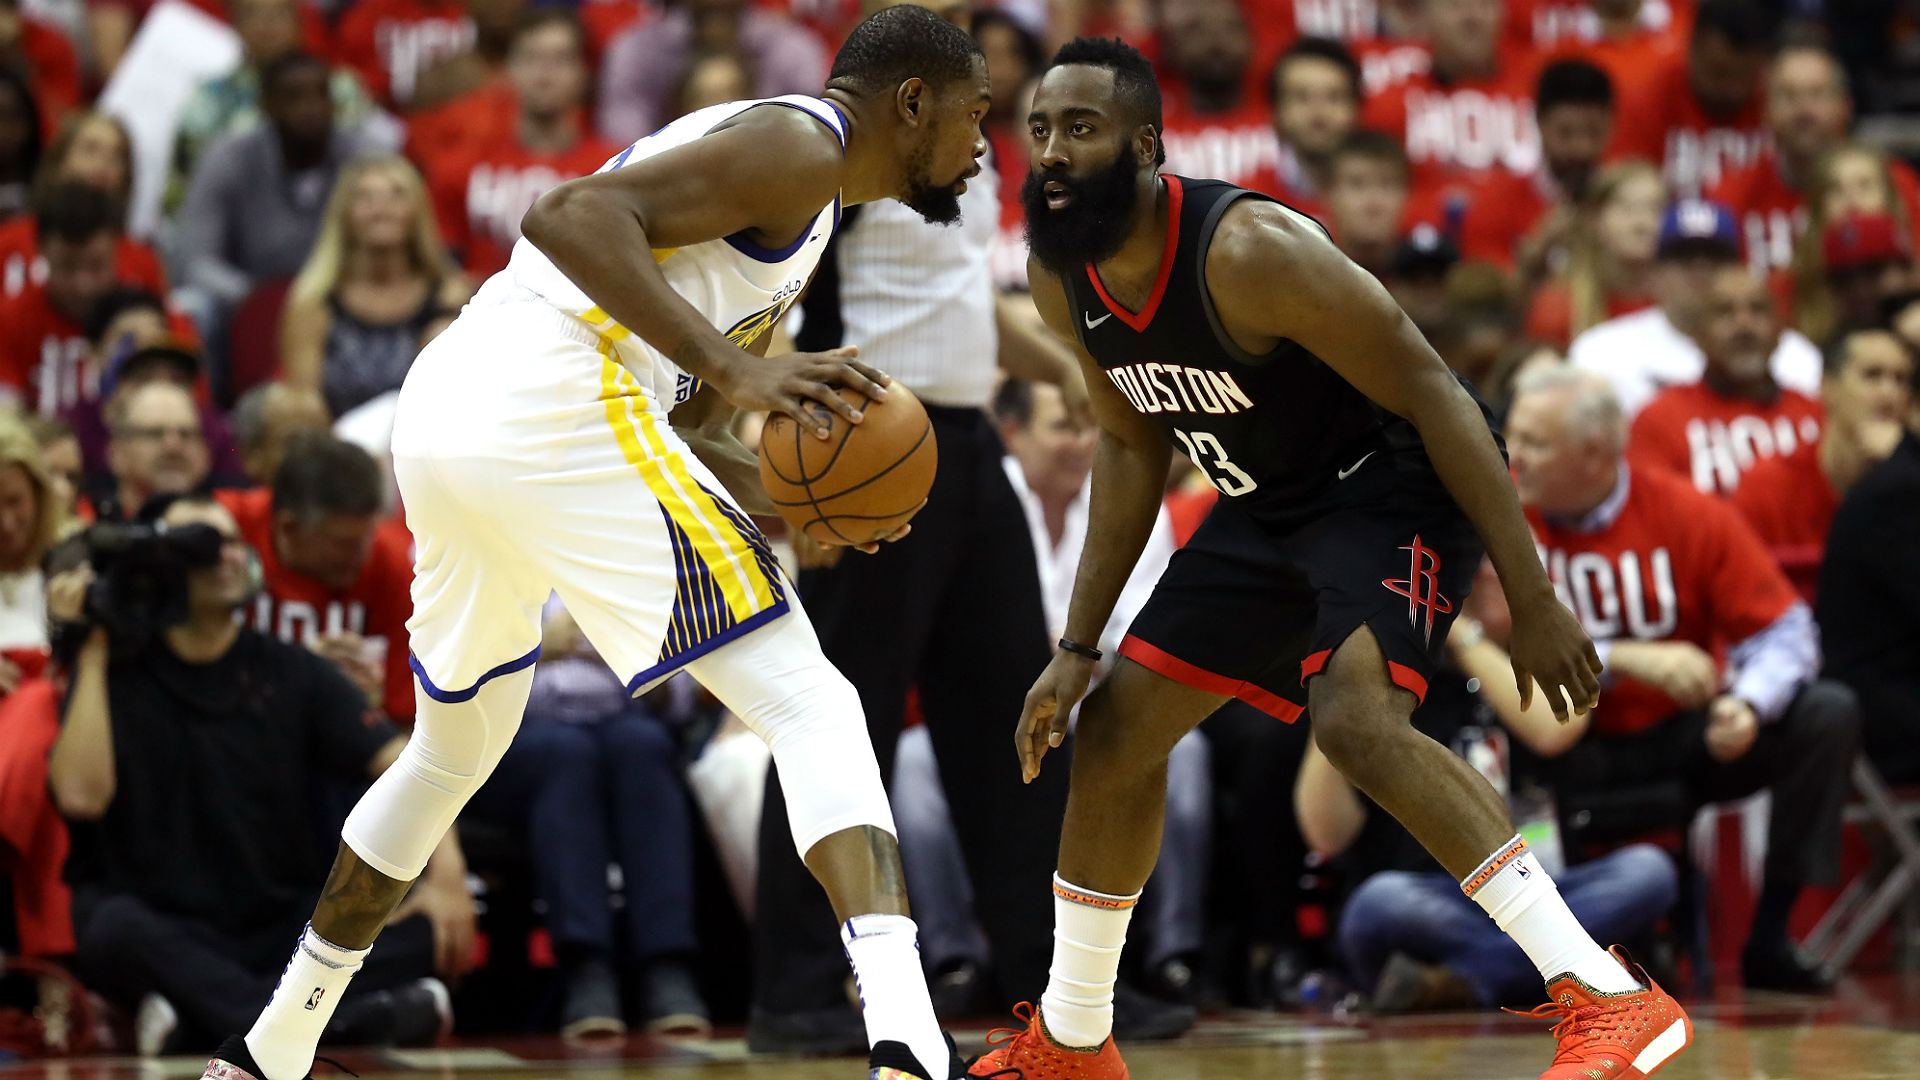 How to watch National Basketball Association playoffs online or on TV